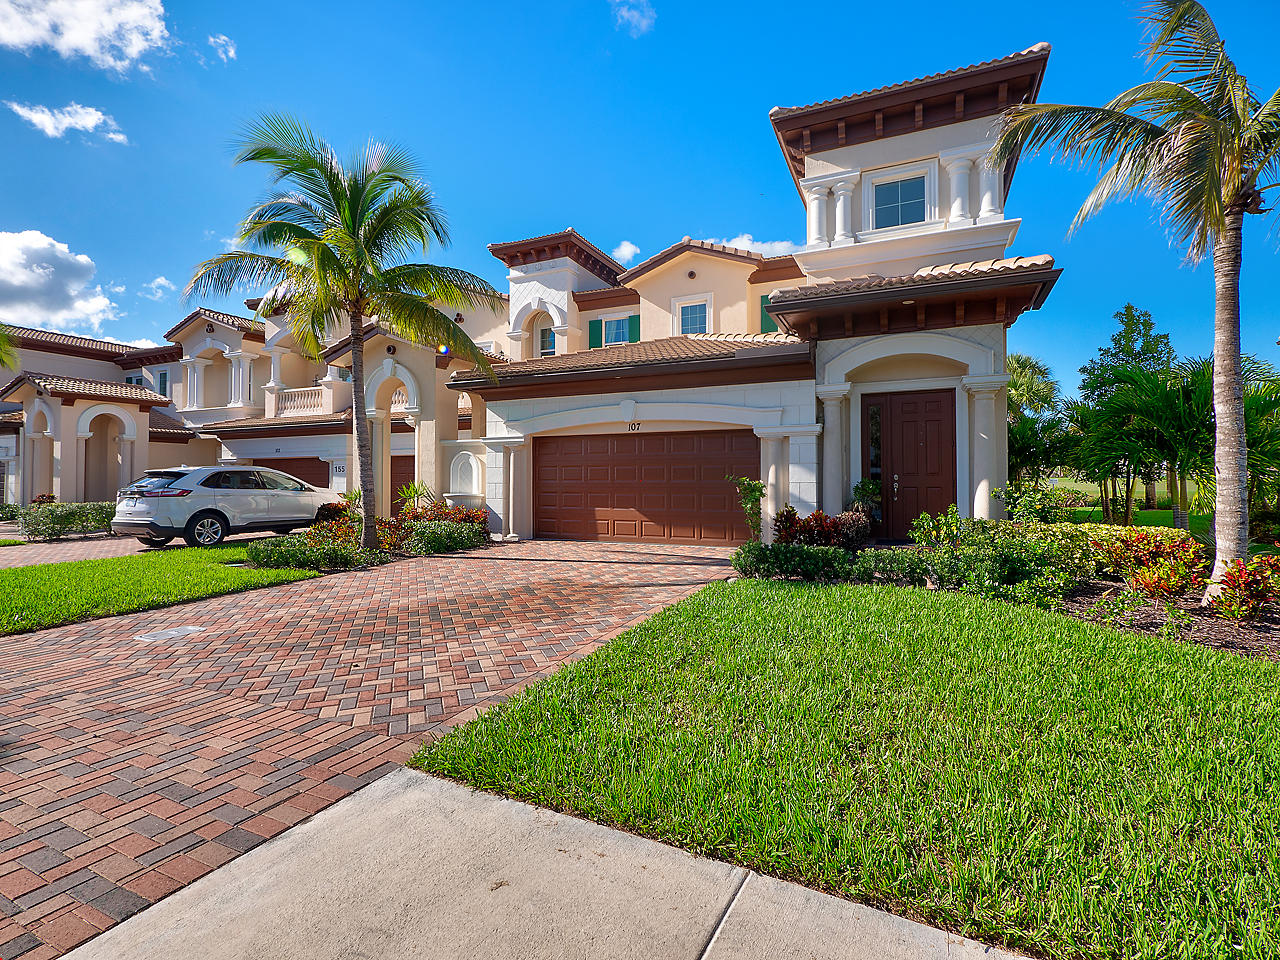 New Home for sale at 155 Tresana Boulevard in Jupiter